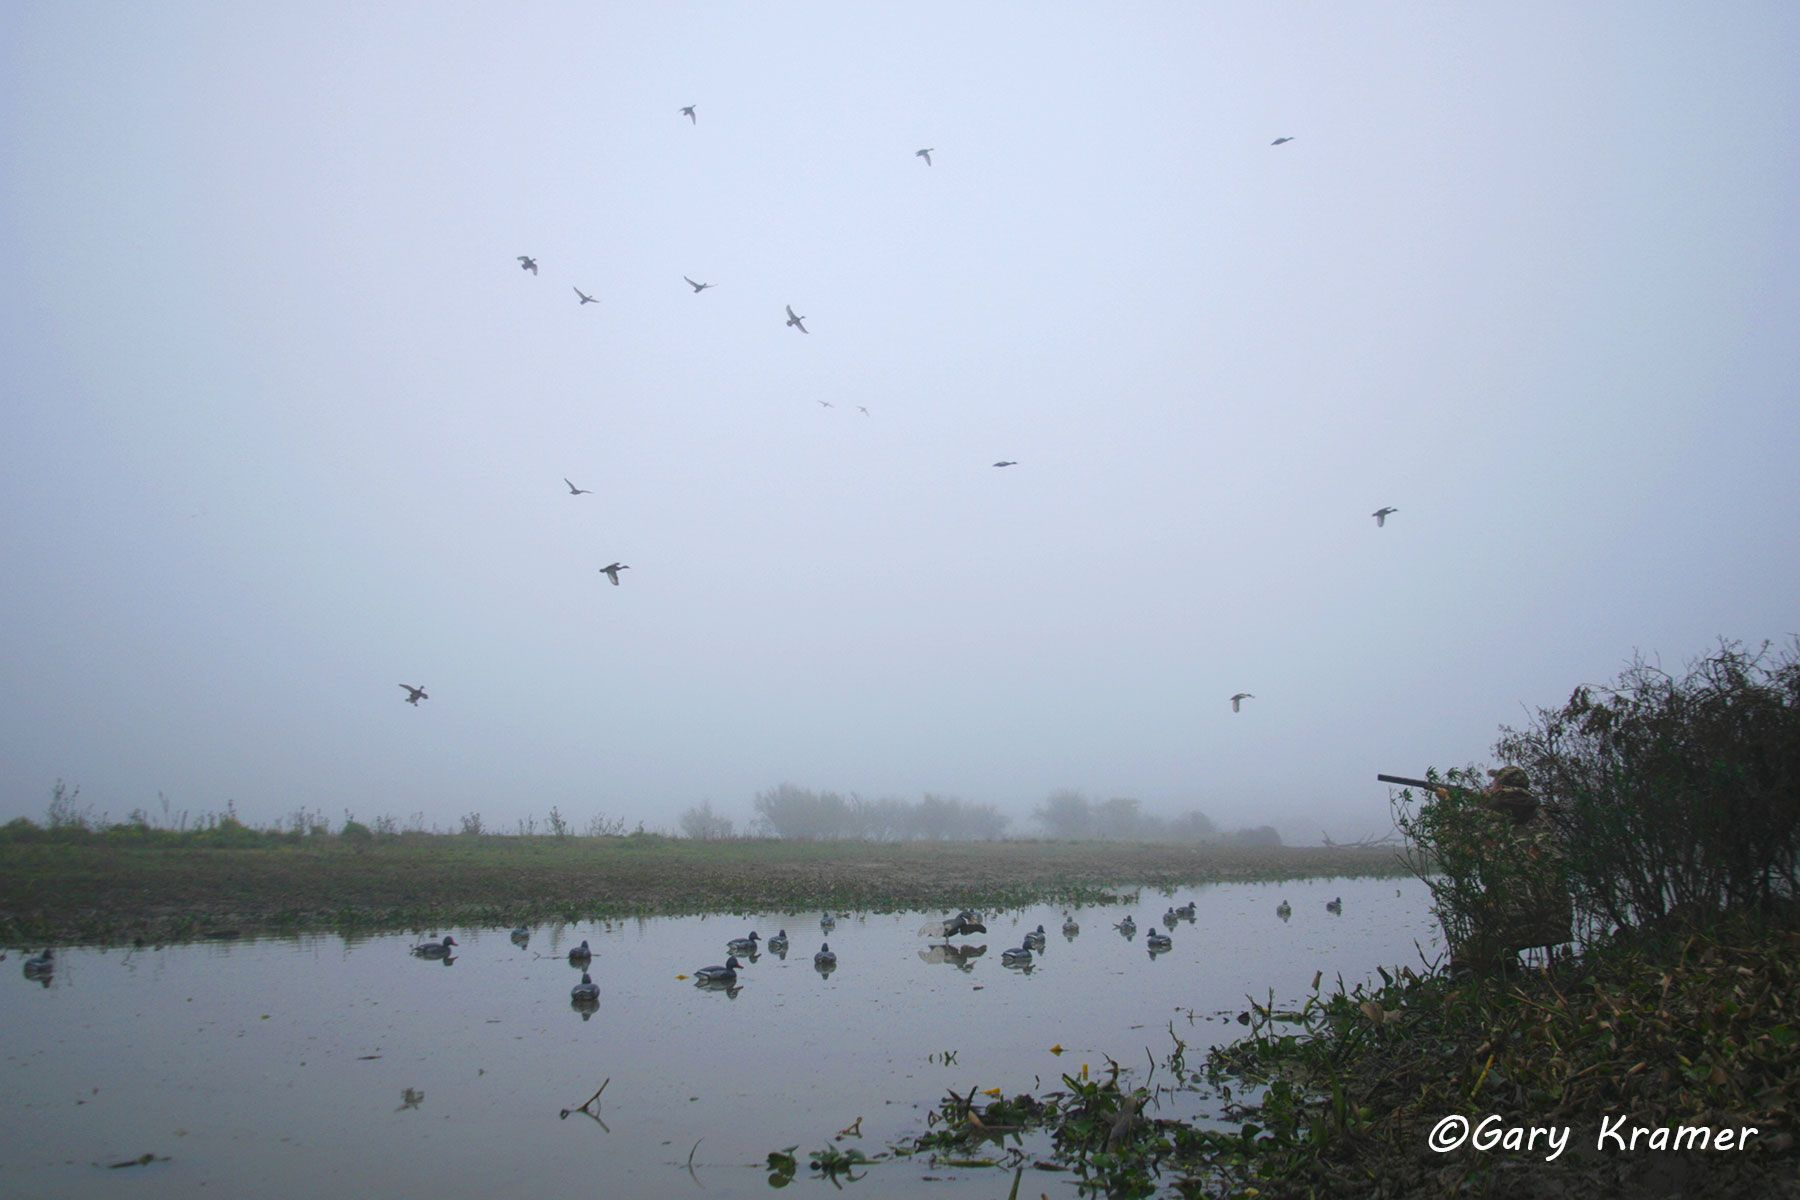 Hunter with ducks over decoys, Argentina - SHDa#076d